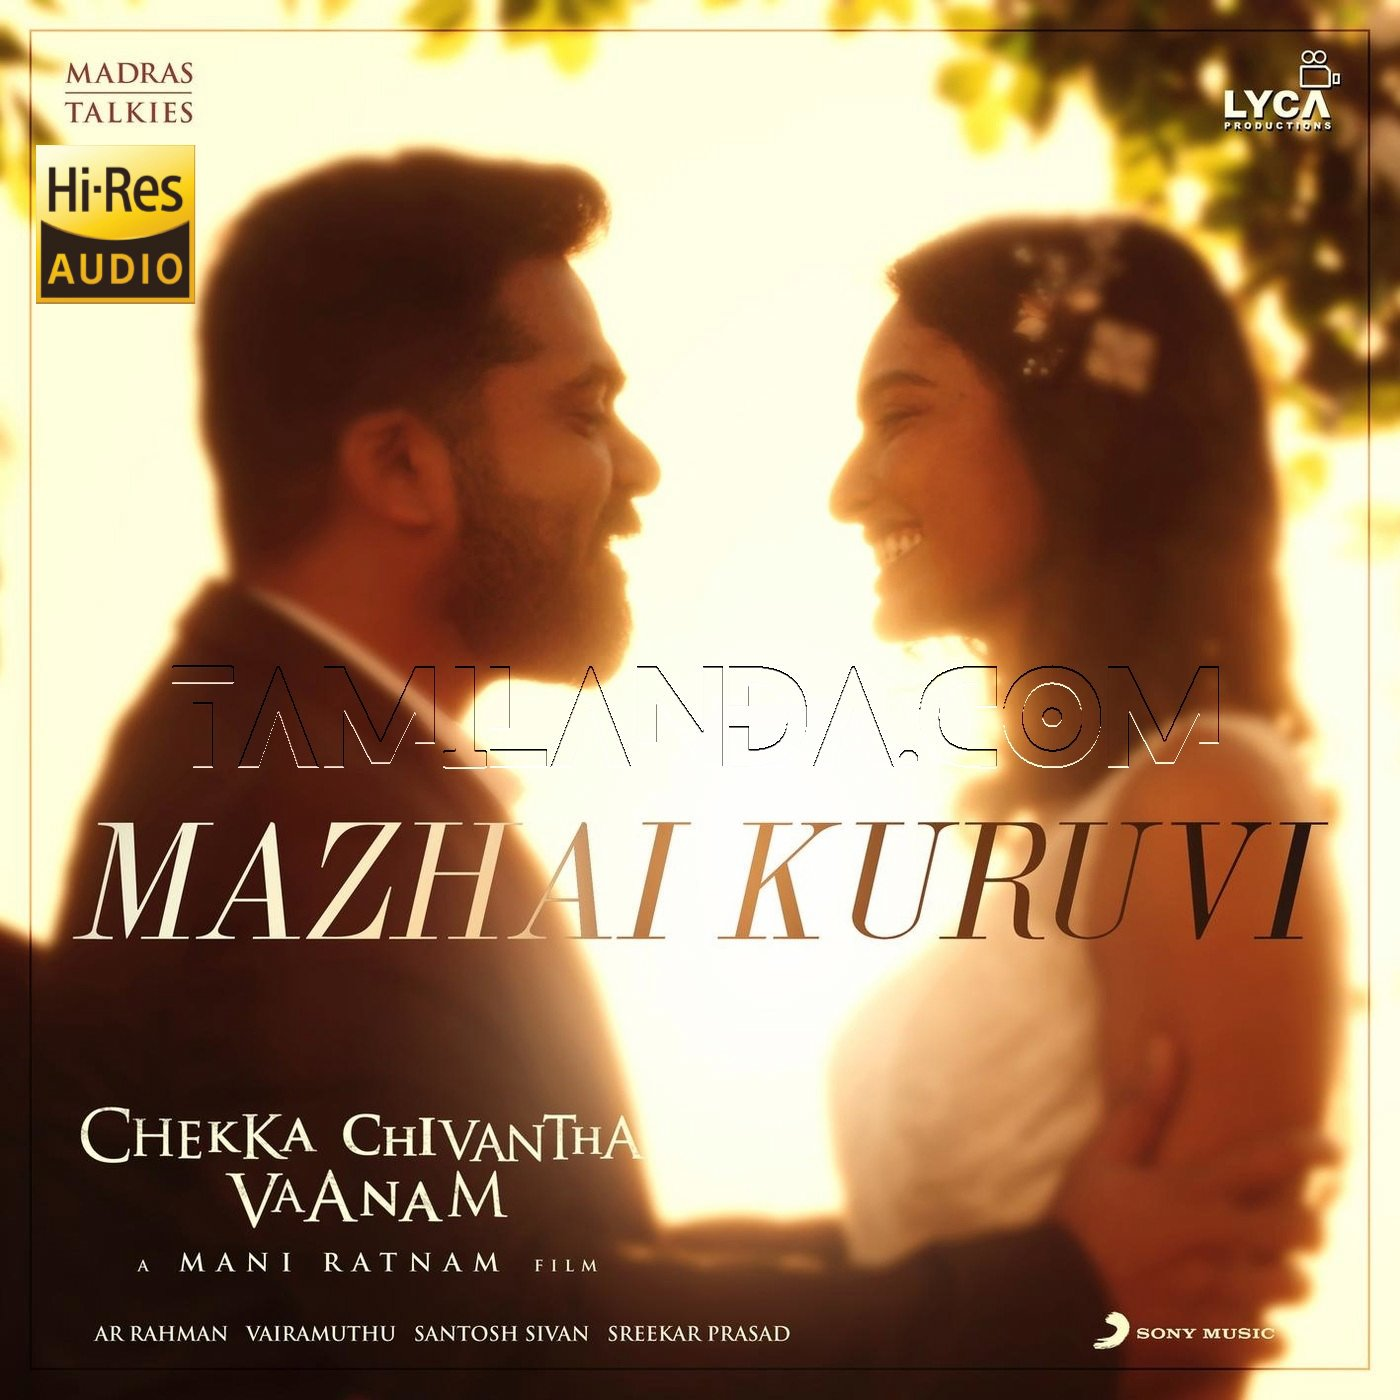 Mazhai Kuruvi (From Chekka Chivantha Vaanam) – Single 24 BIT FLAC Song